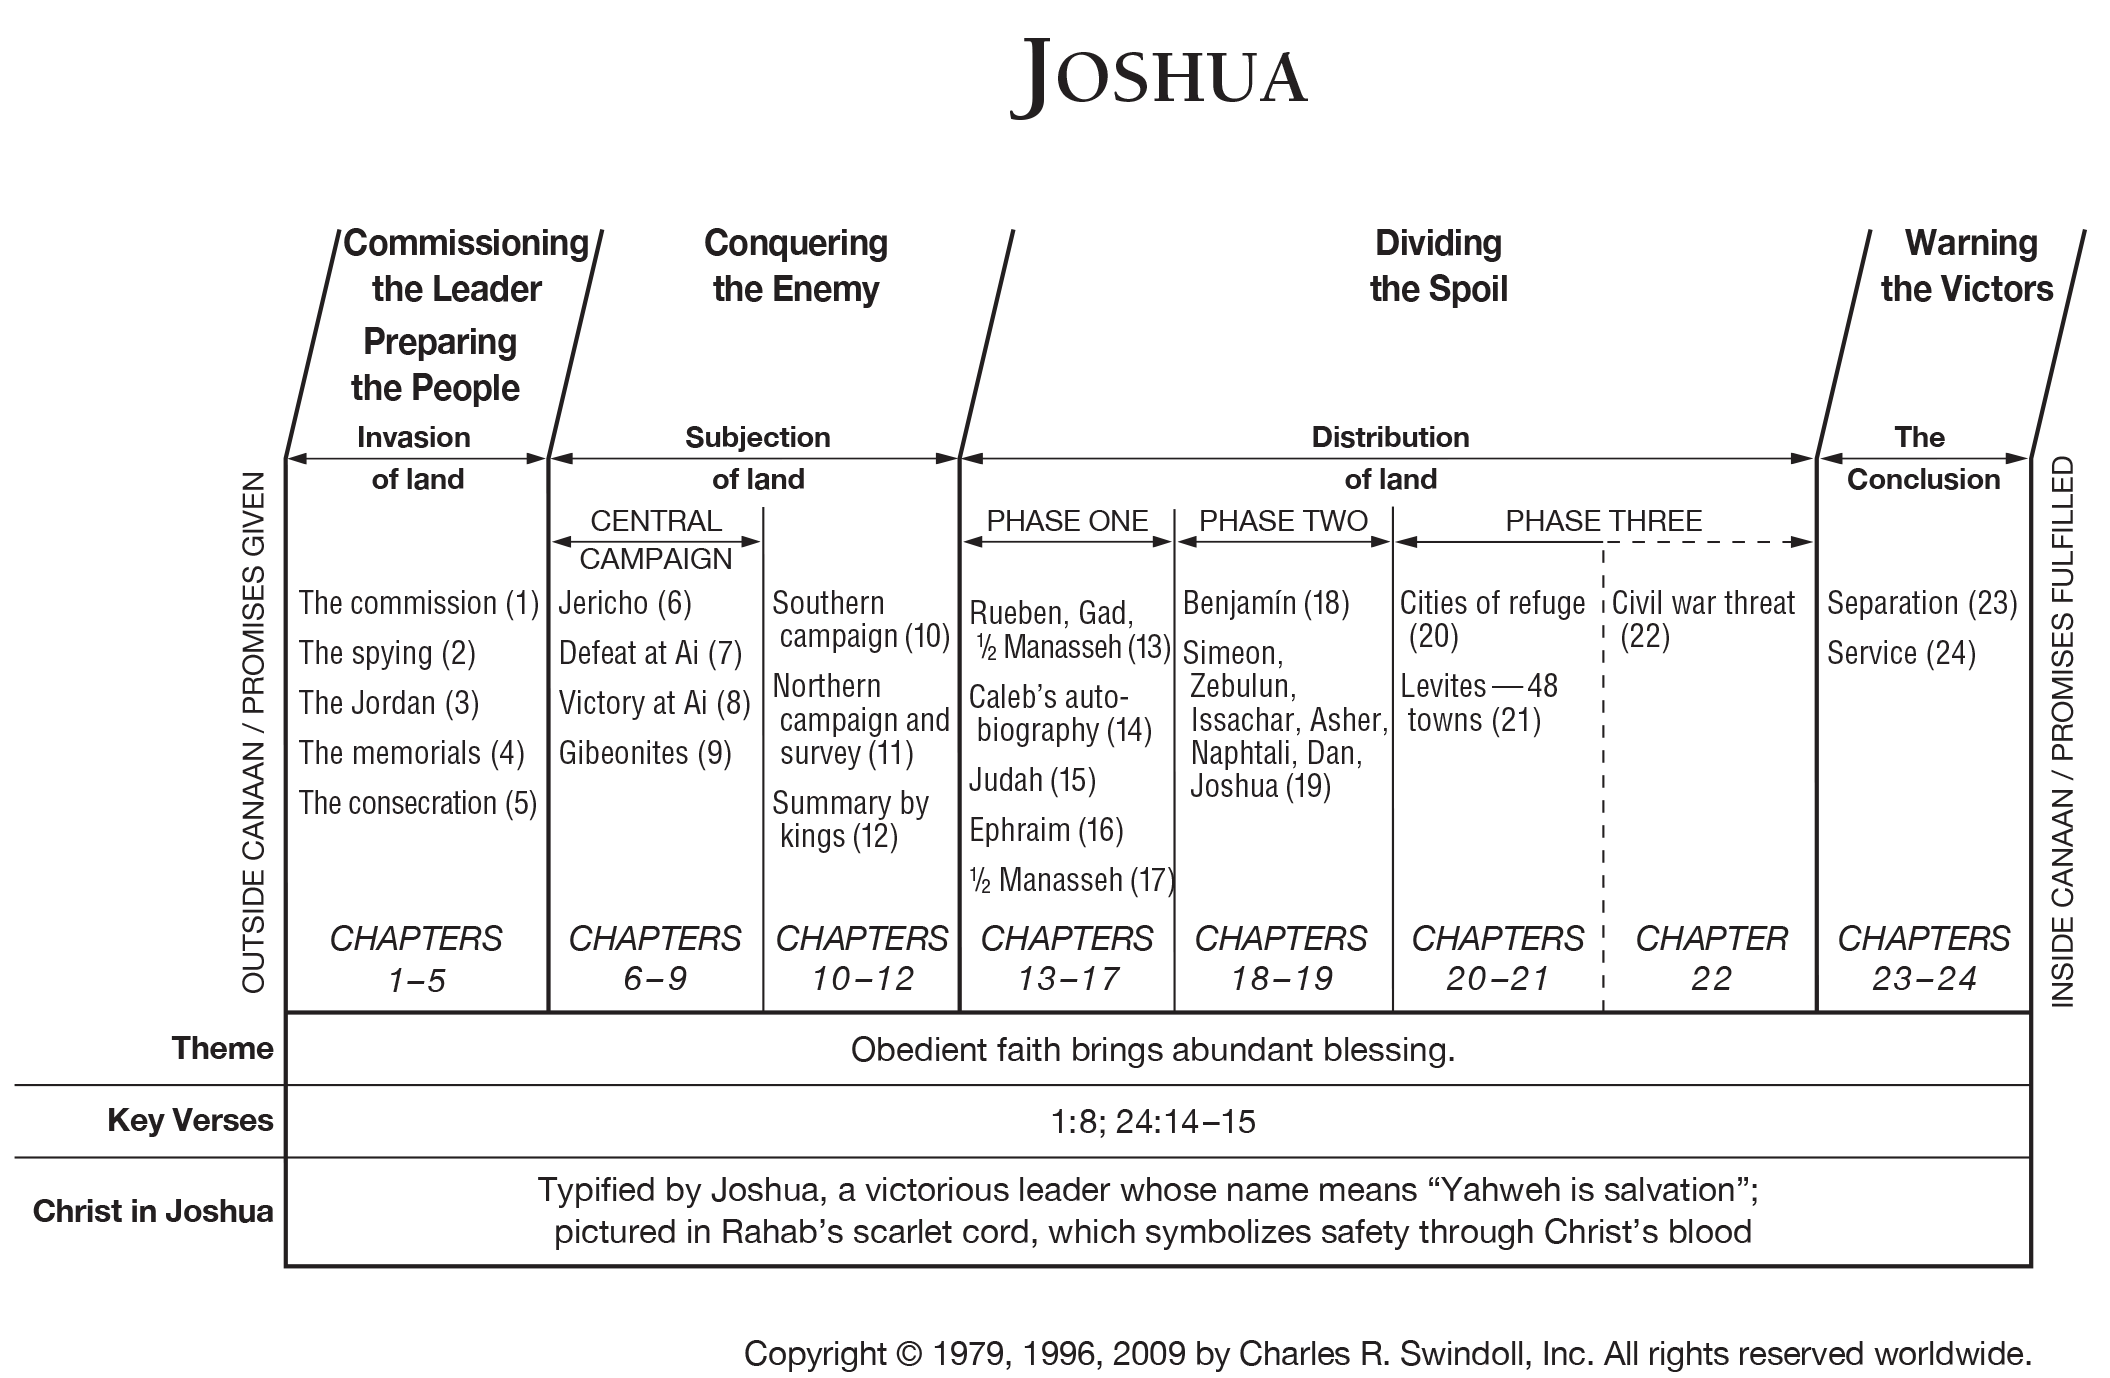 Joshua in the bible summary